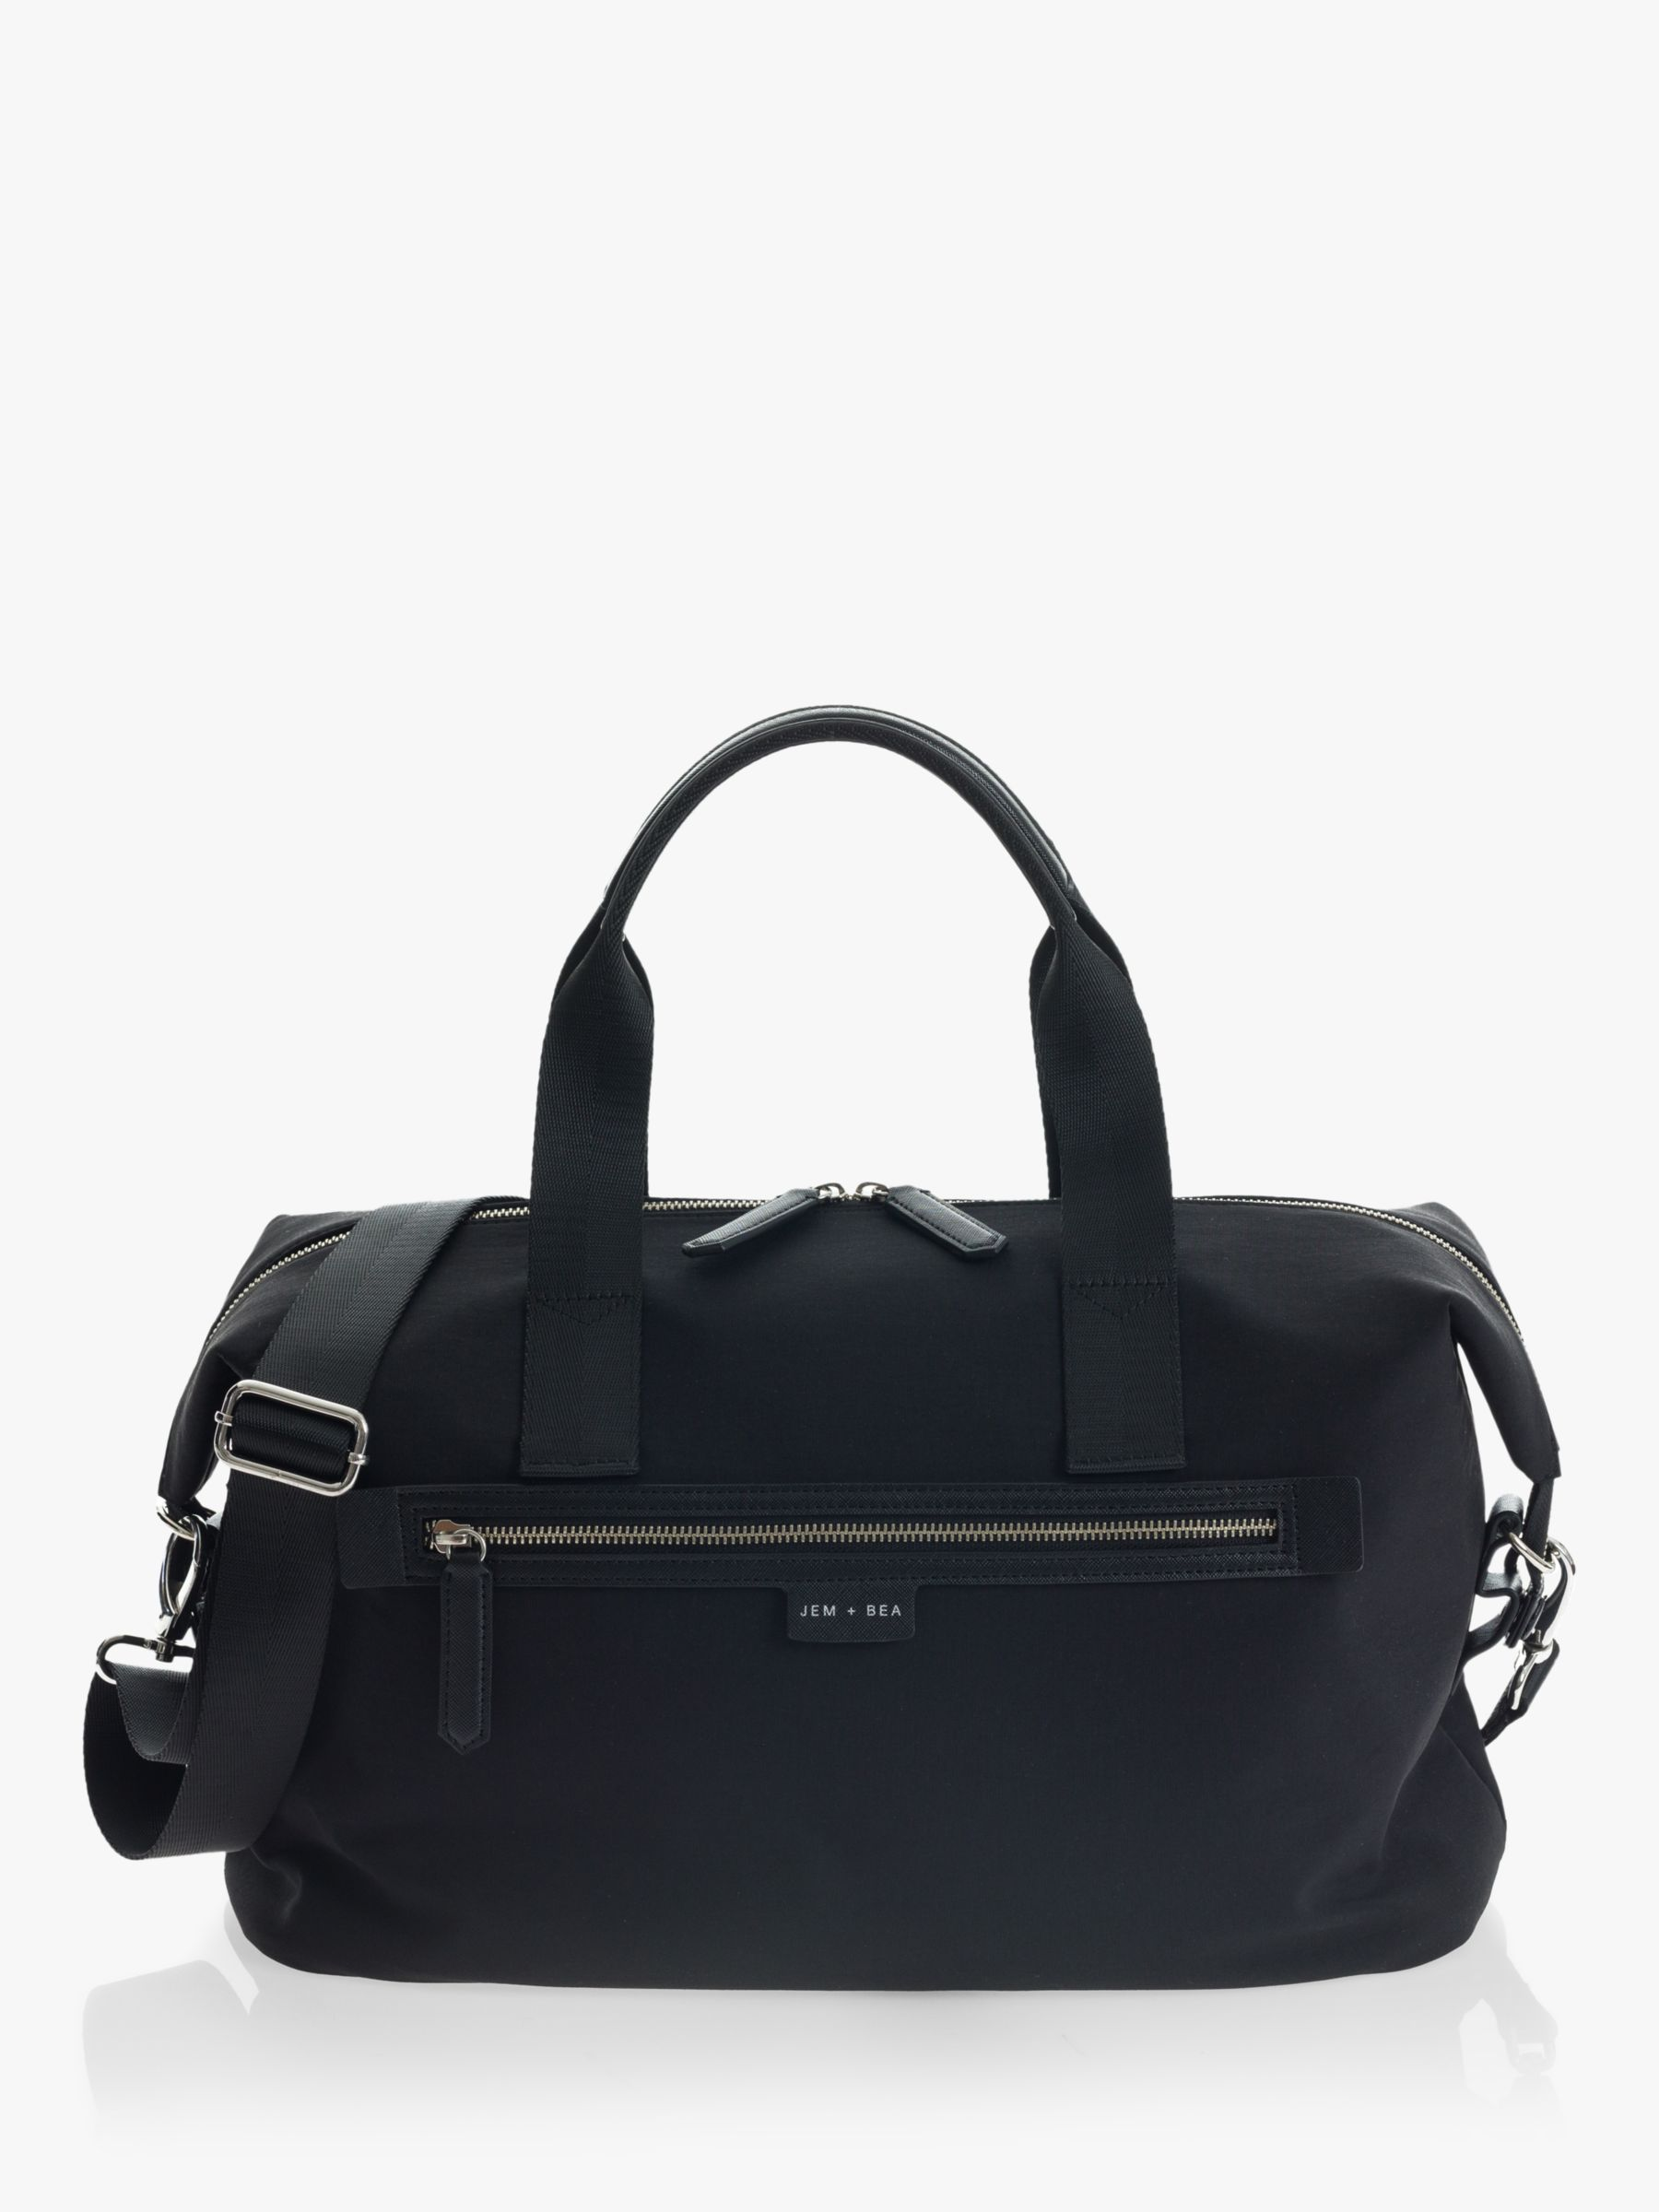 Jem + Bea JEM + BEA SUSTAINABLE Edie Eco Changing bag, Black